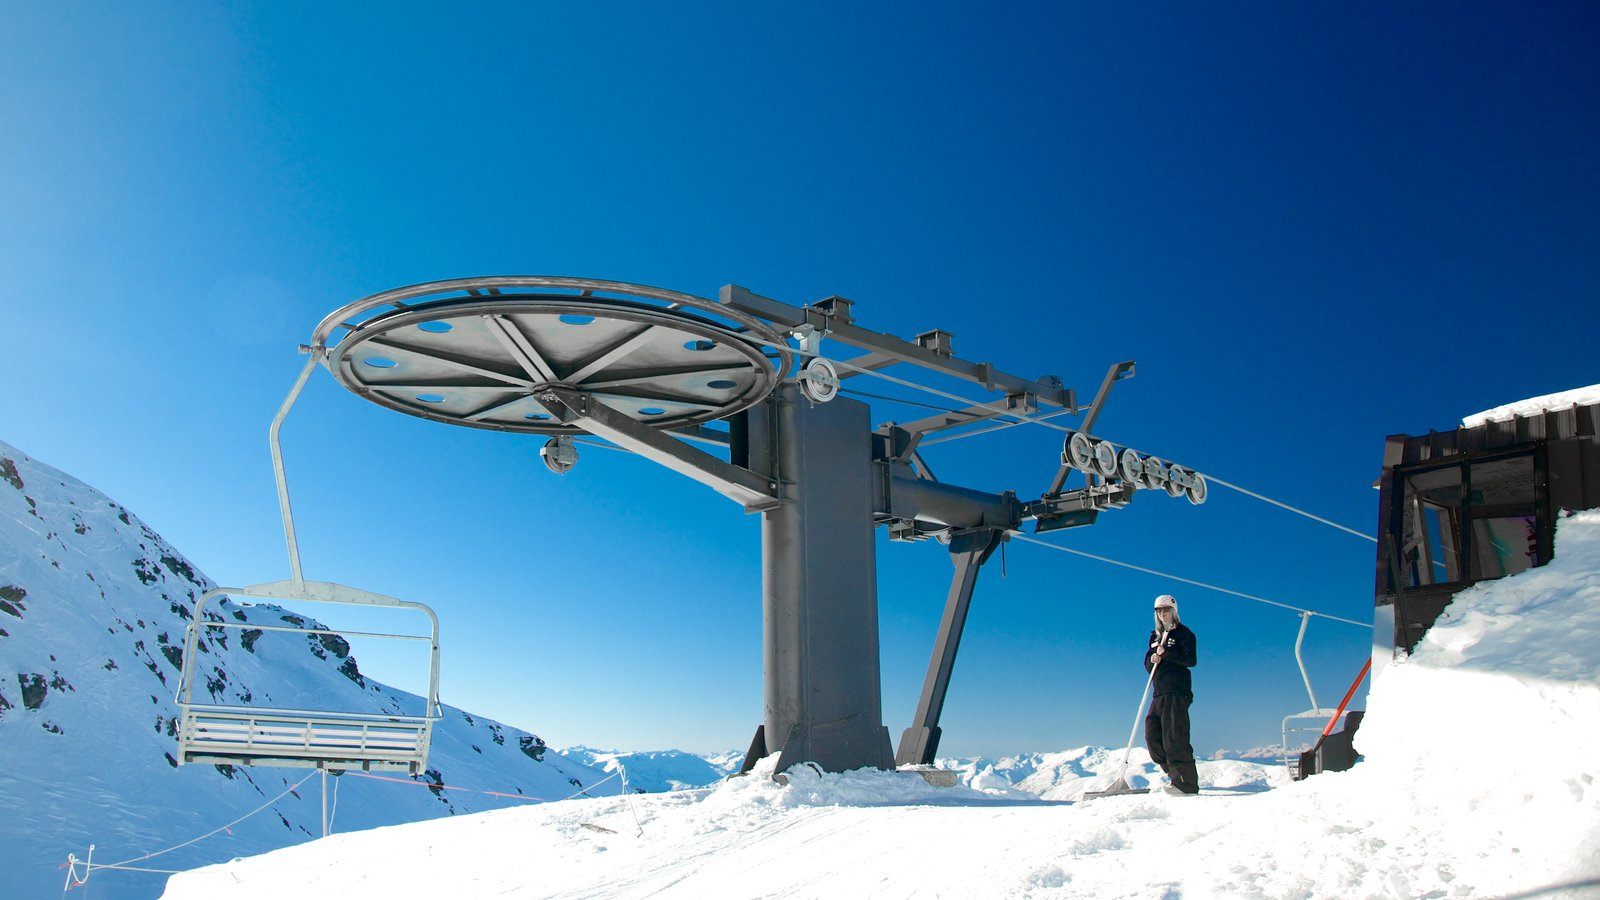 The Remarkables Ski Area which includes a gondola and snow